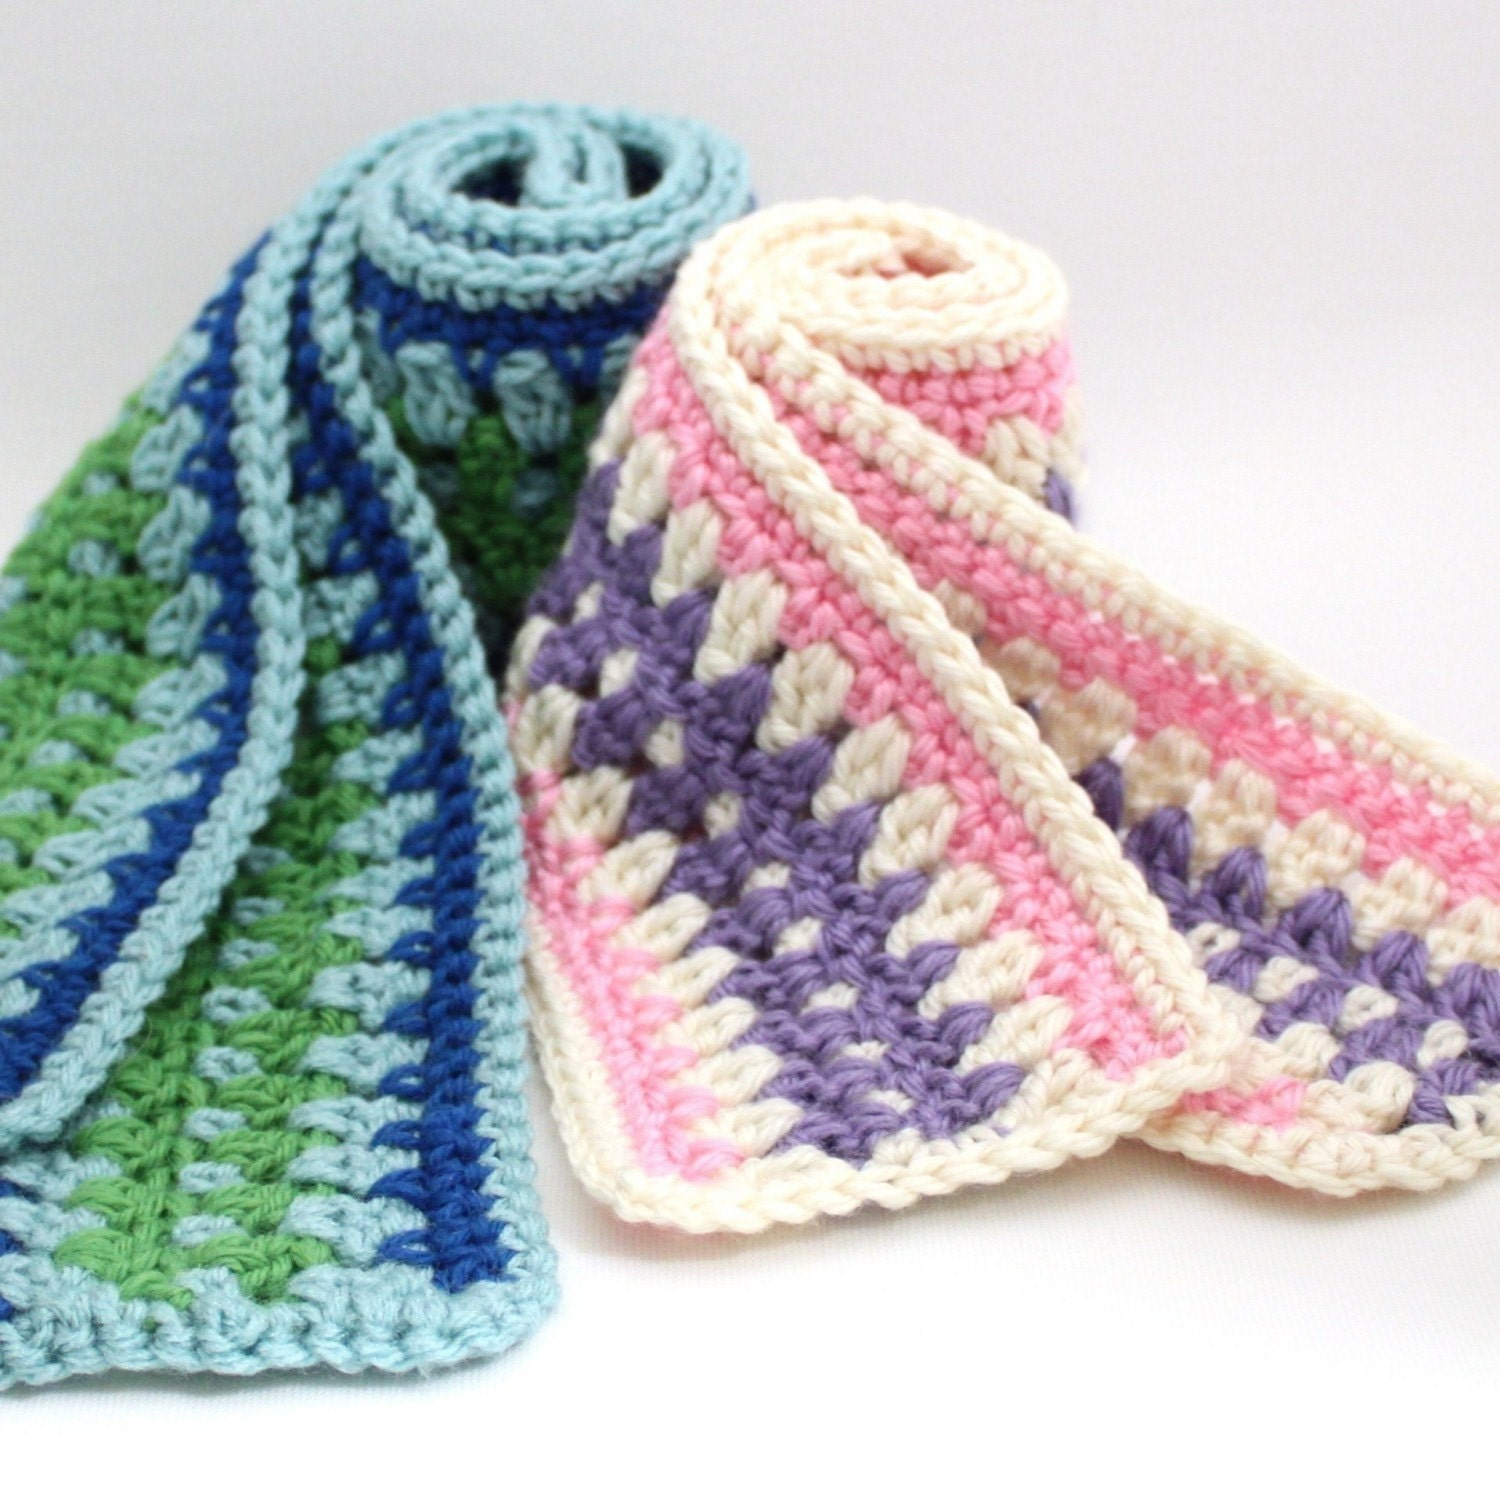 Crochet Pattern For Baby Hat And Scarf : BABY SCARF CROCHET PATTERN Crochet Patterns